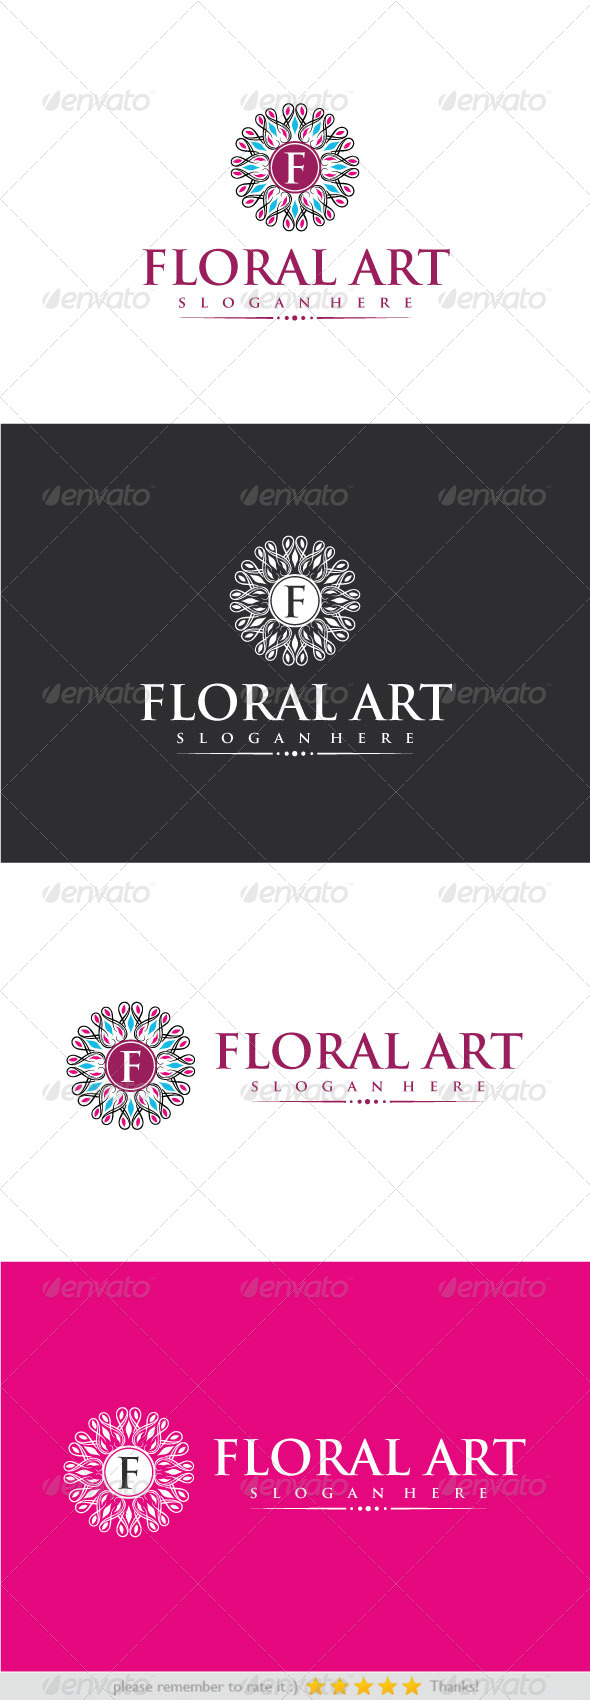 GraphicRiver Floral Art 8318995